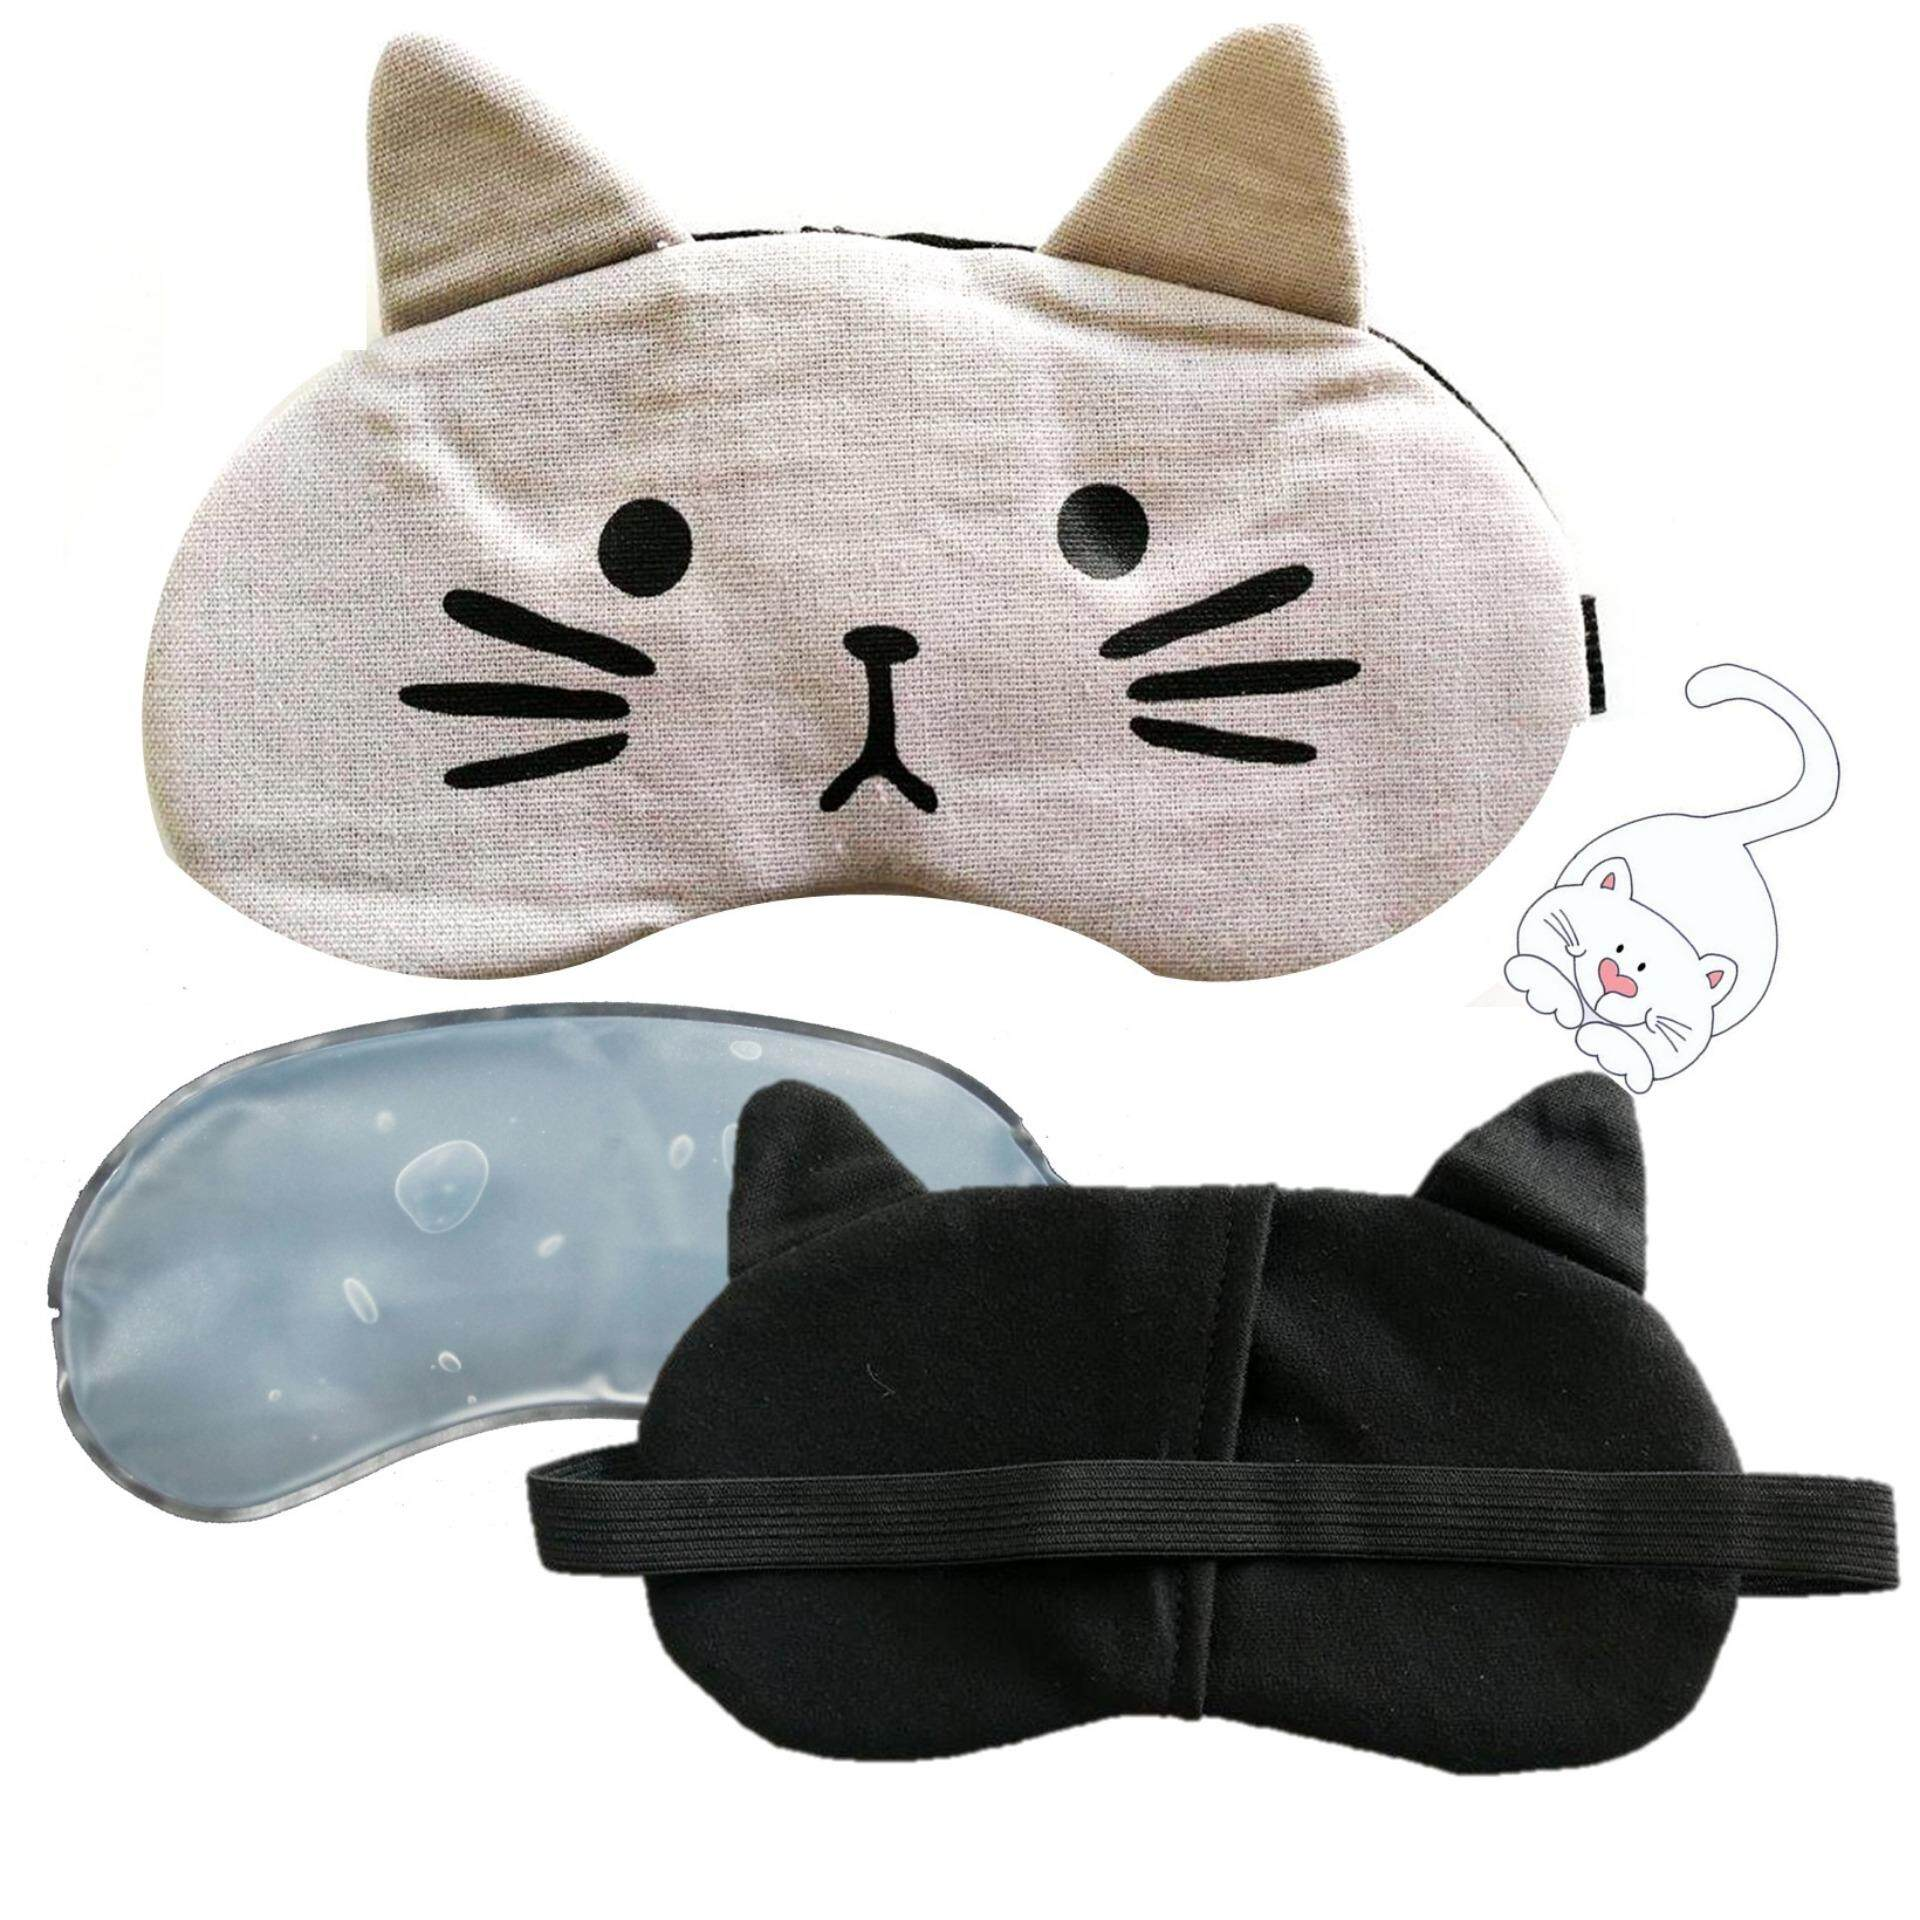 a*bloom ผ้าปิดตา พร้อมเจล Eye Mask with Soothing Gel รุ่น Little Cat